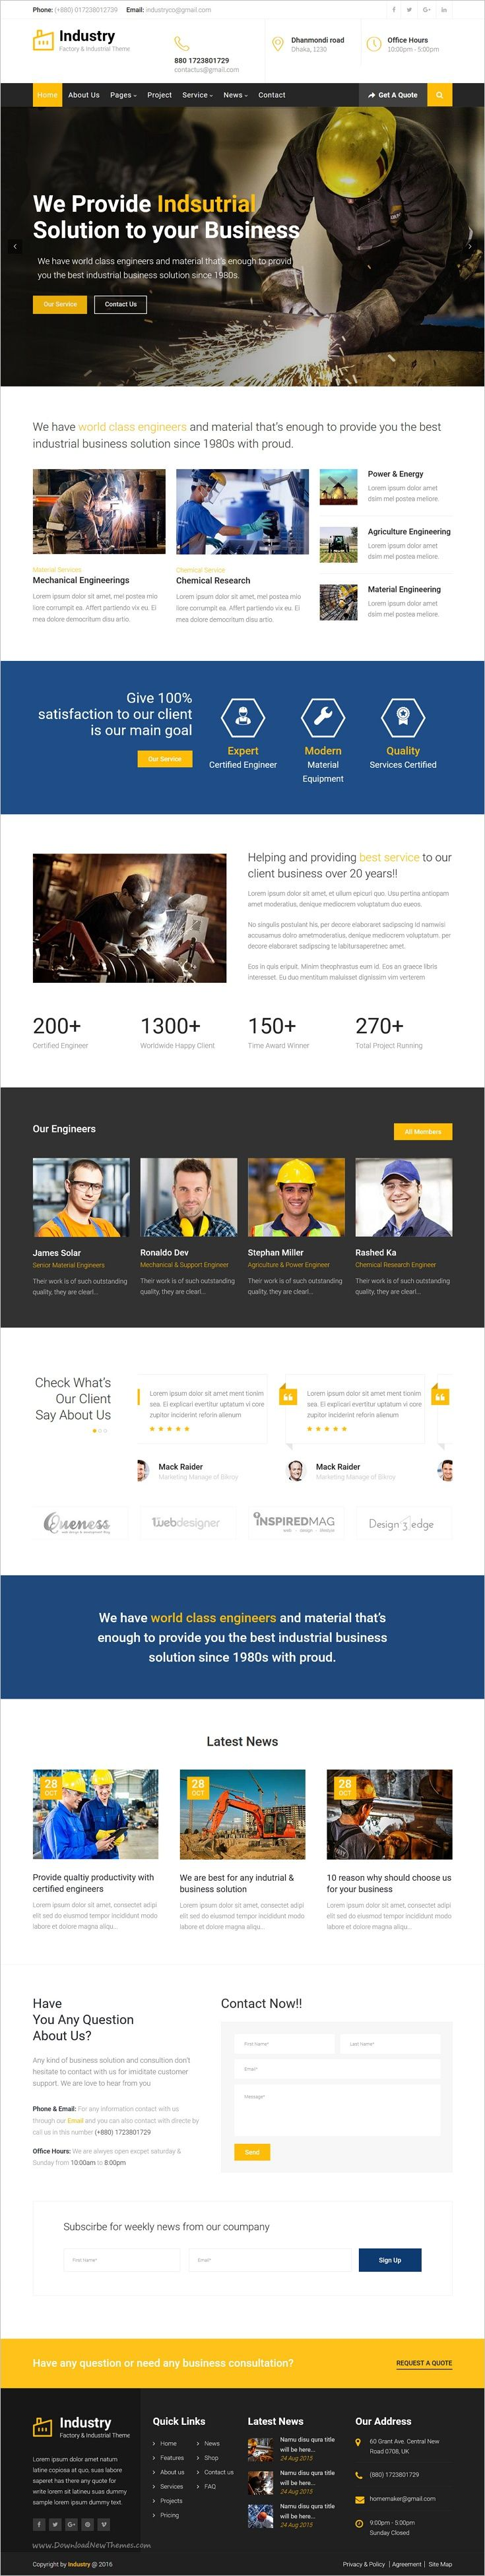 Industry Factory Industrial Business Template Web Design Mockup Business Wordpress Themes Website Design Company